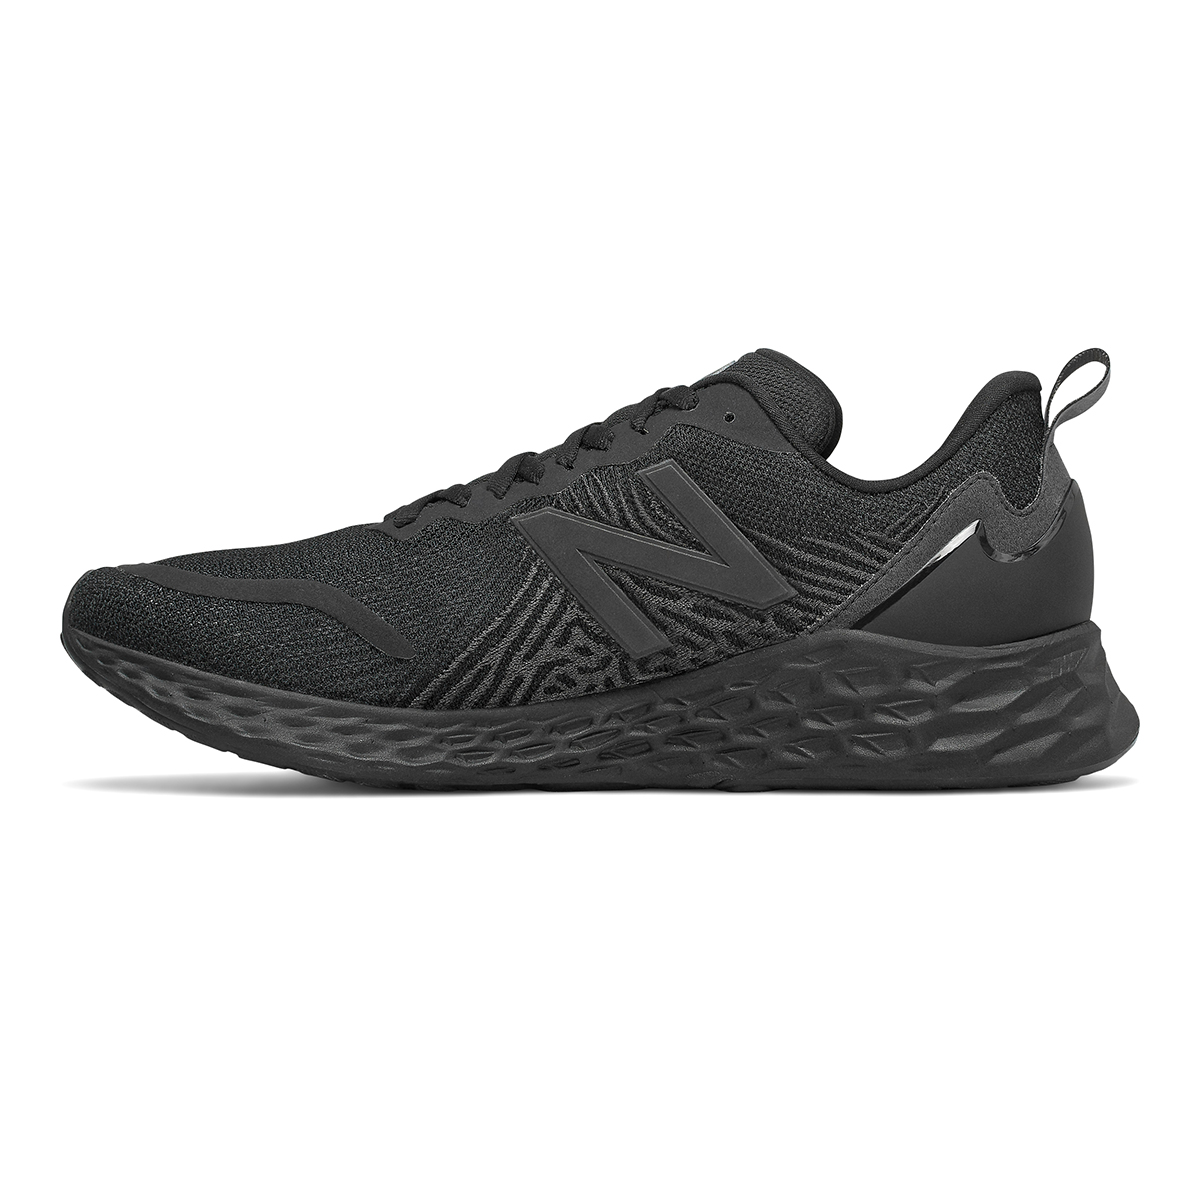 Men's New Balance Tempo Running Shoe - Color: Black - Size: 9 - Width: Wide, Black, large, image 2